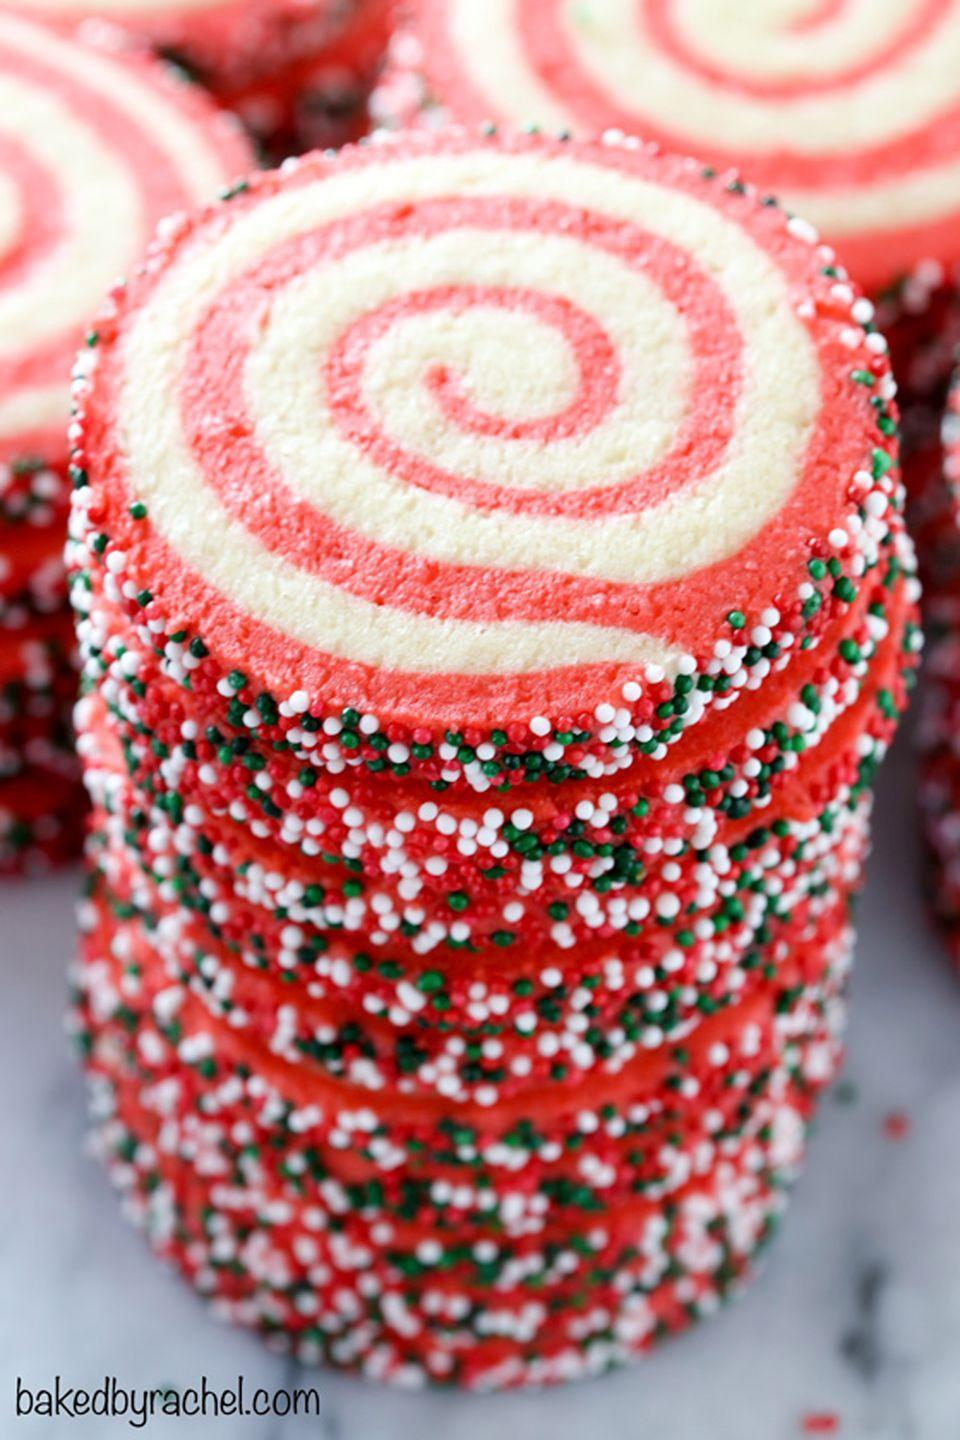 """<p>Have a <a href=""""https://www.countryliving.com/food-drinks/g1059/homemade-food-gifts/"""" rel=""""nofollow noopener"""" target=""""_blank"""" data-ylk=""""slk:holiday cookie exchange"""" class=""""link rapid-noclick-resp"""">holiday cookie exchange</a> coming up? These colorful pinwheels will impress the lucky recipient with both taste and presentation. </p><p><strong>Get the recipe at <a href=""""https://www.bakedbyrachel.com/christmas-pinwheel-sugar-cookies/"""" rel=""""nofollow noopener"""" target=""""_blank"""" data-ylk=""""slk:Baked by Rachel"""" class=""""link rapid-noclick-resp"""">Baked by Rachel</a>.</strong></p><p><strong><a class=""""link rapid-noclick-resp"""" href=""""https://www.amazon.com/dp/B0001ZYYP6/?tag=syn-yahoo-20&ascsubtag=%5Bartid%7C10050.g.647%5Bsrc%7Cyahoo-us"""" rel=""""nofollow noopener"""" target=""""_blank"""" data-ylk=""""slk:SHOP STAND MIXERS"""">SHOP STAND MIXERS</a></strong> </p>"""